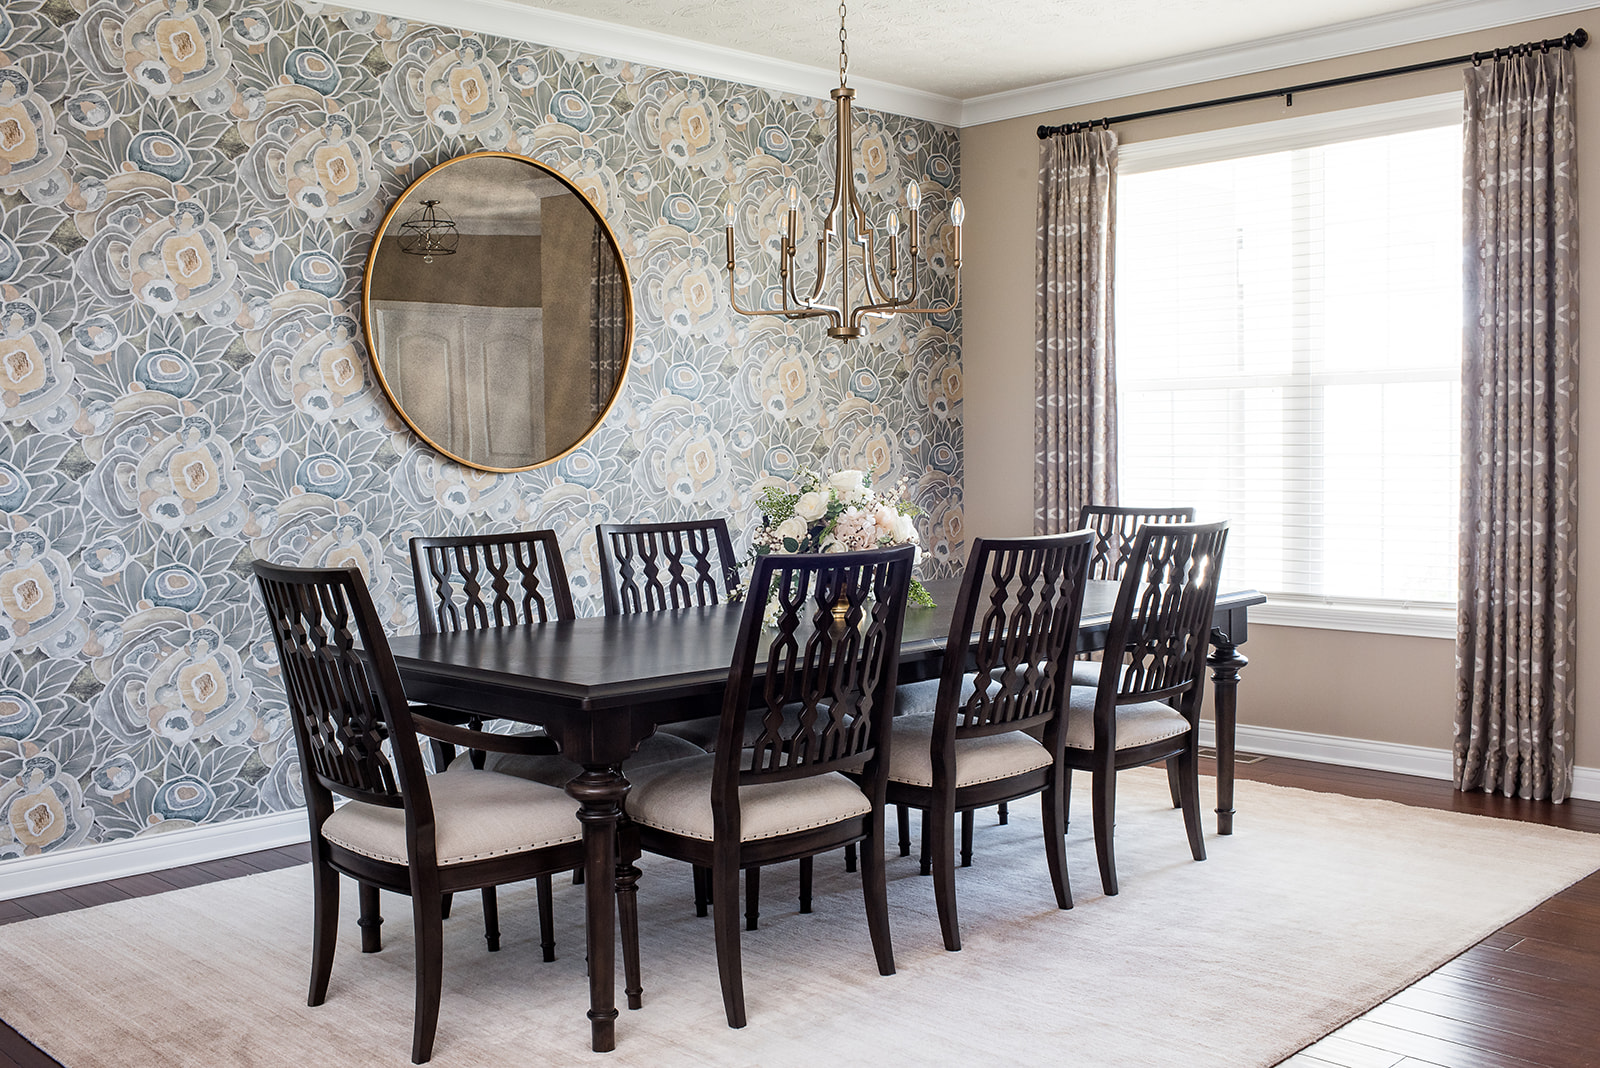 Wilson Project: Dining Room Transformation